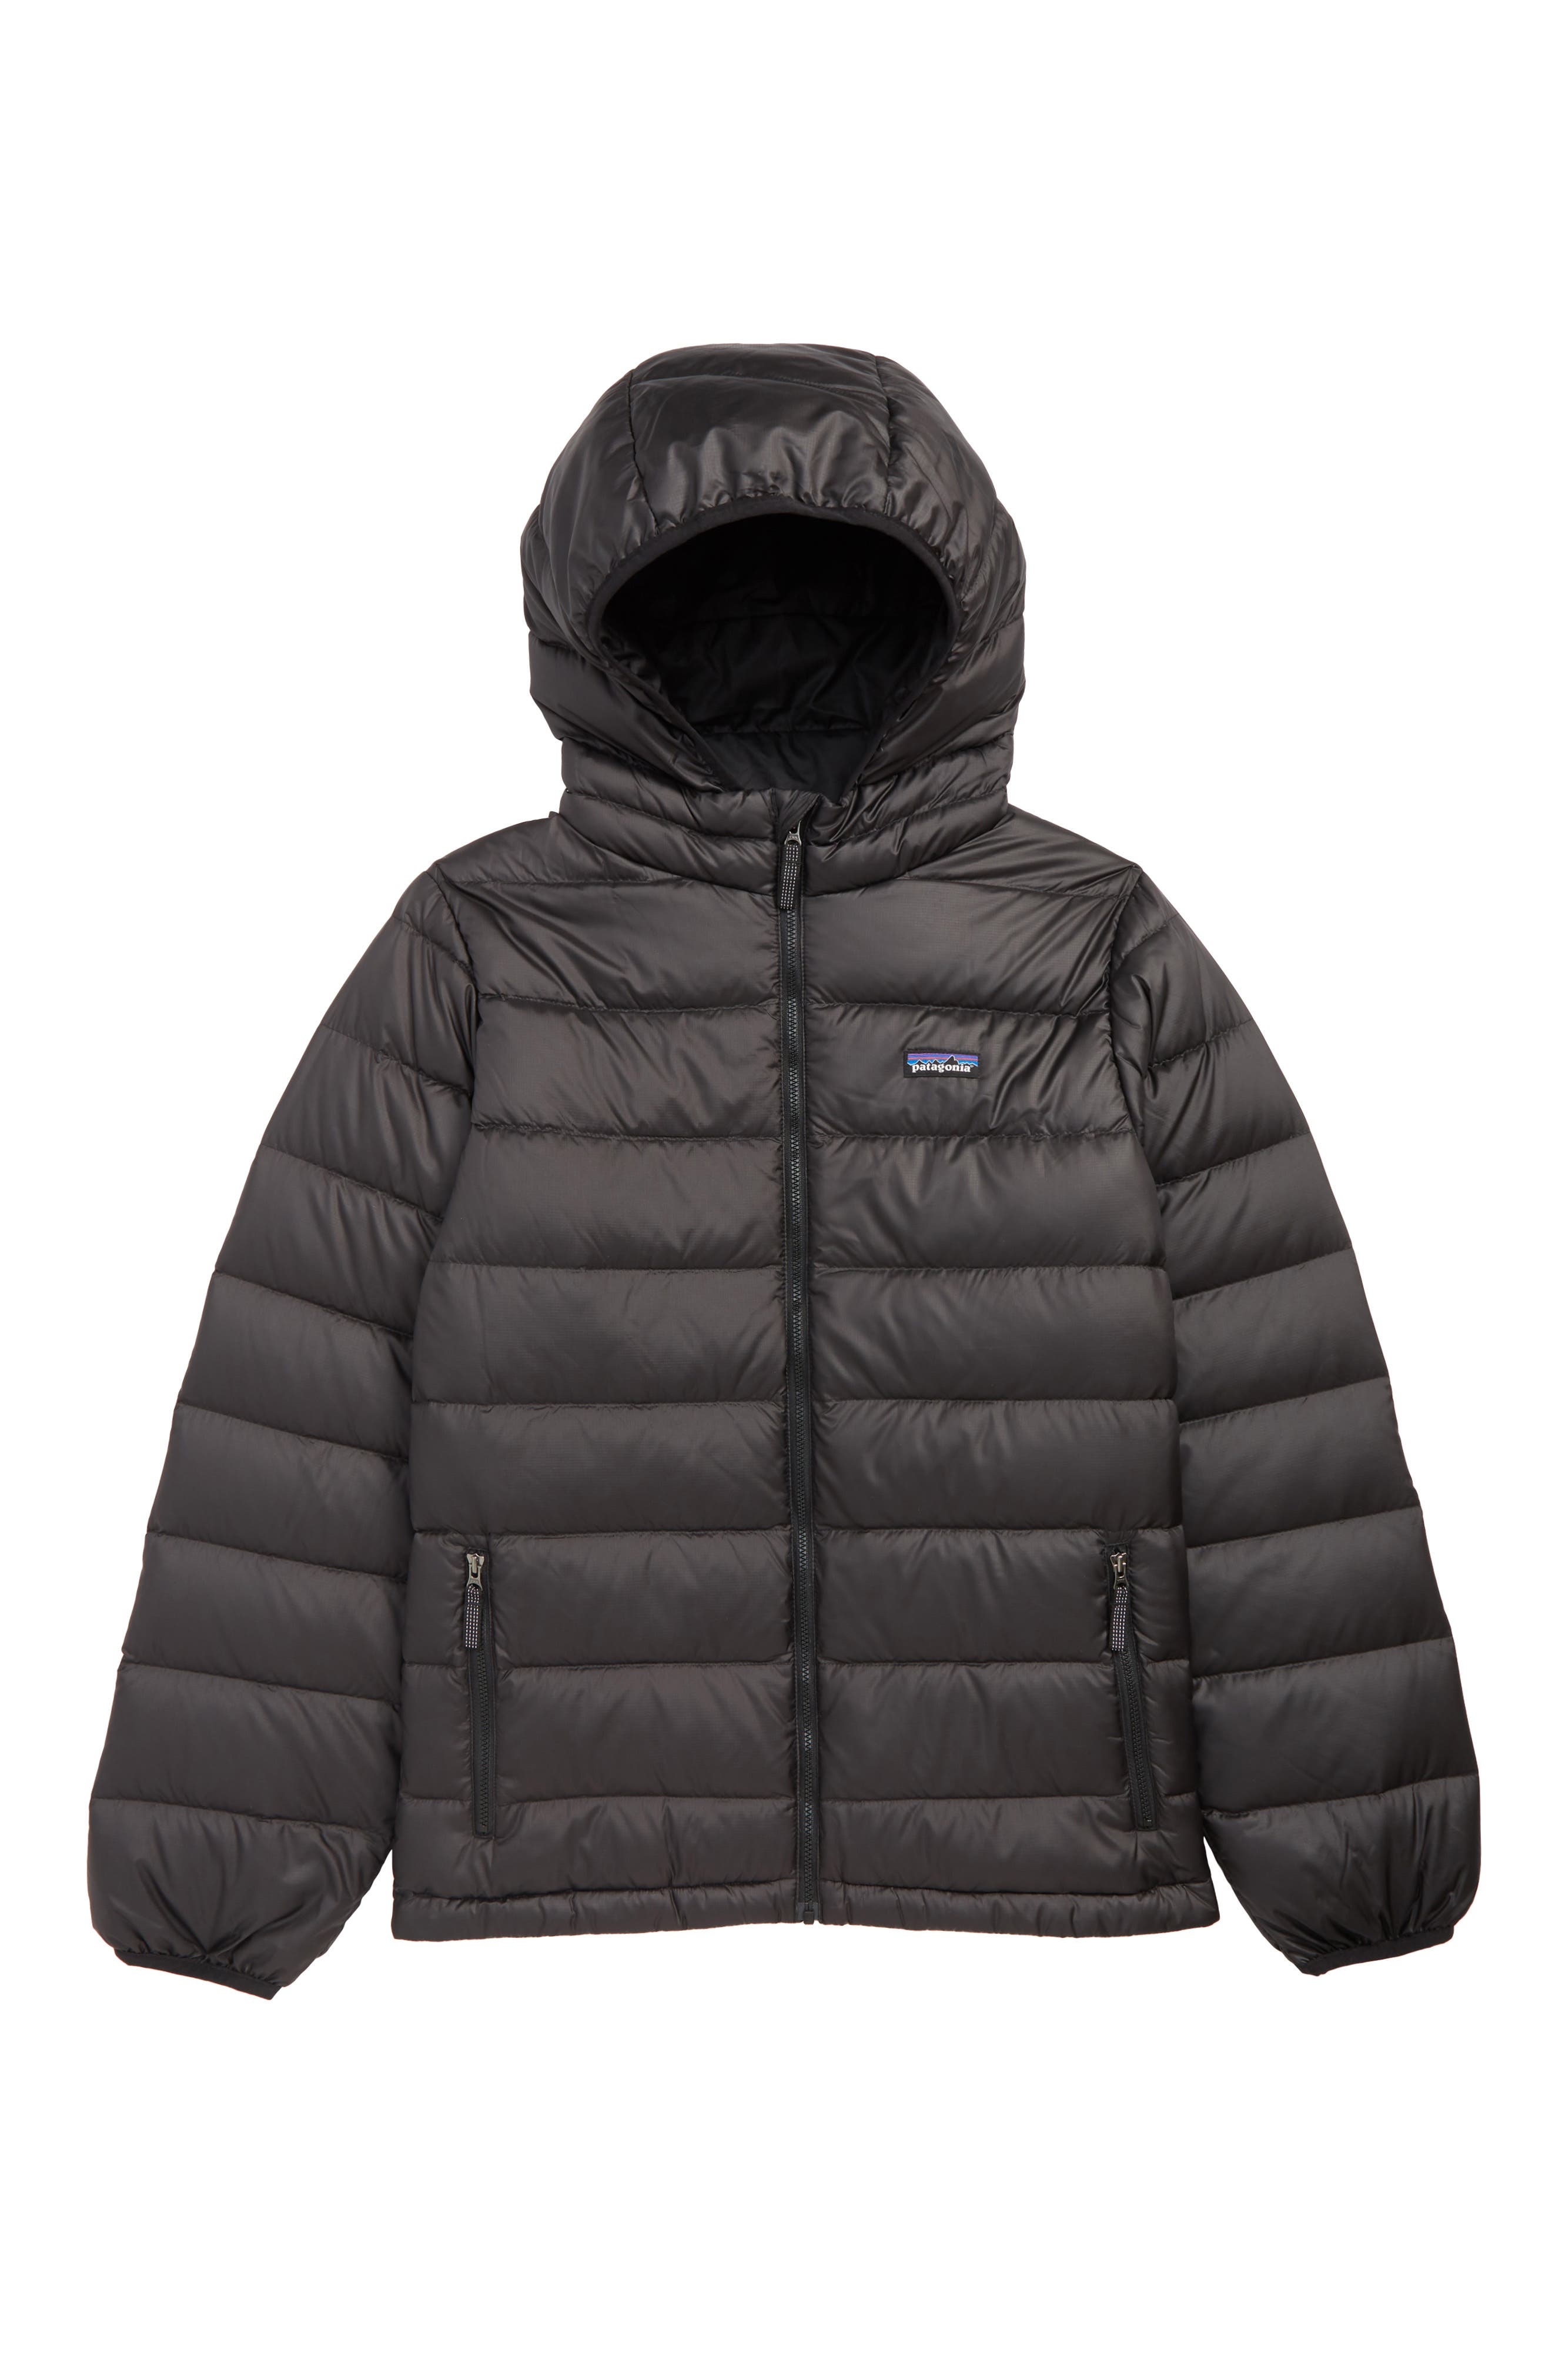 PATAGONIA Hooded Down Jacket, Main, color, 001